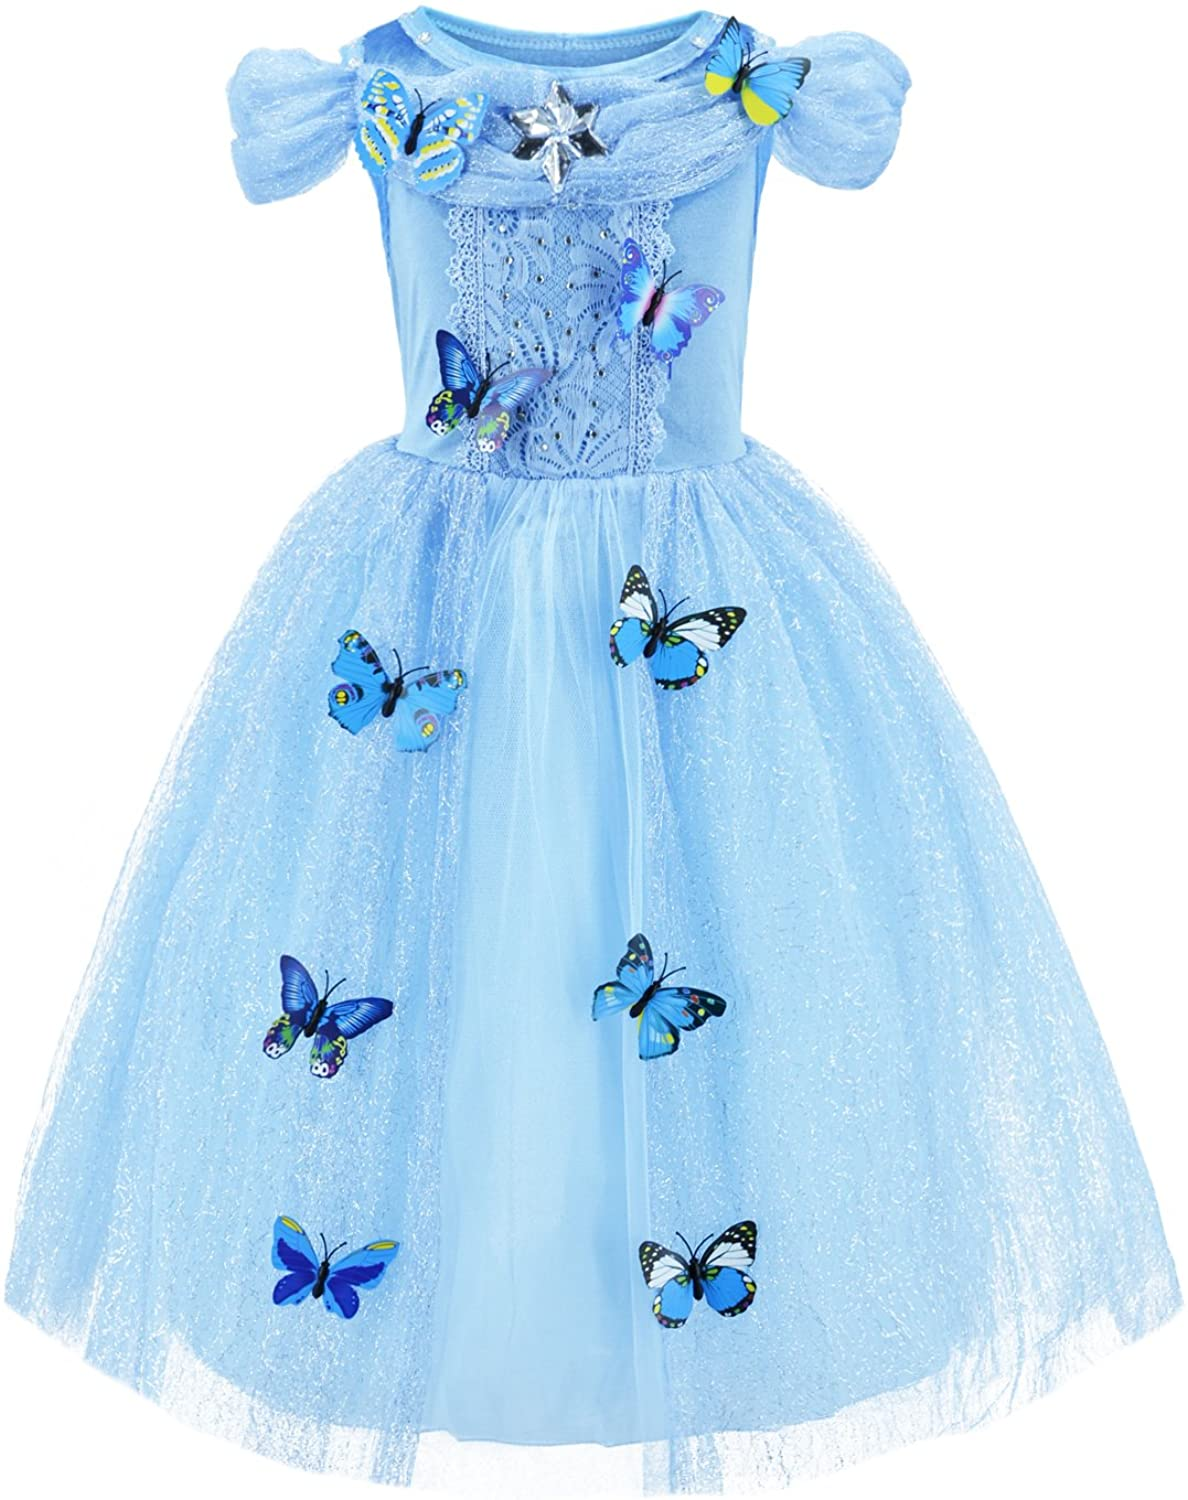 Party Chili Princess Costume for Girls Birthday,Christmas Dress Up with Accessories 3-10 Years